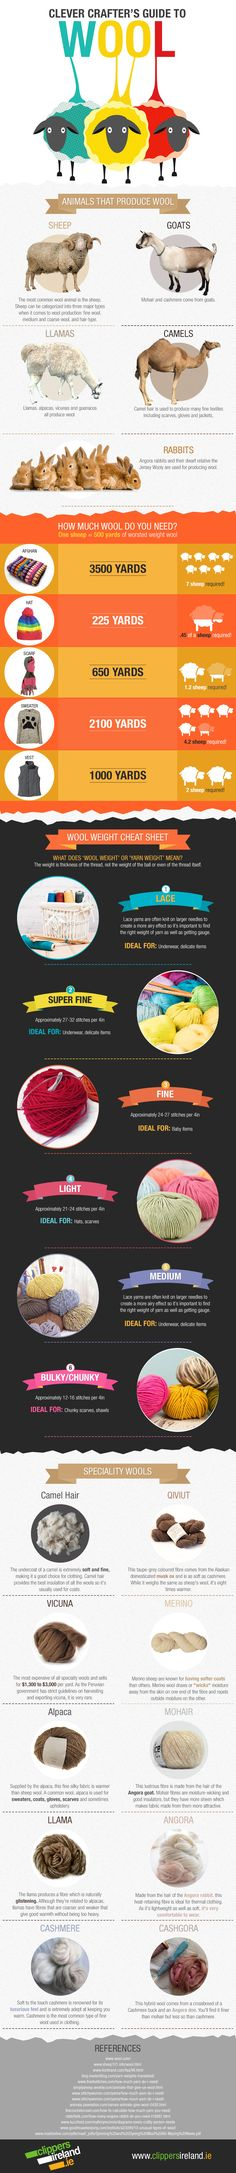 Infographic - Crafter's Guide to Wool